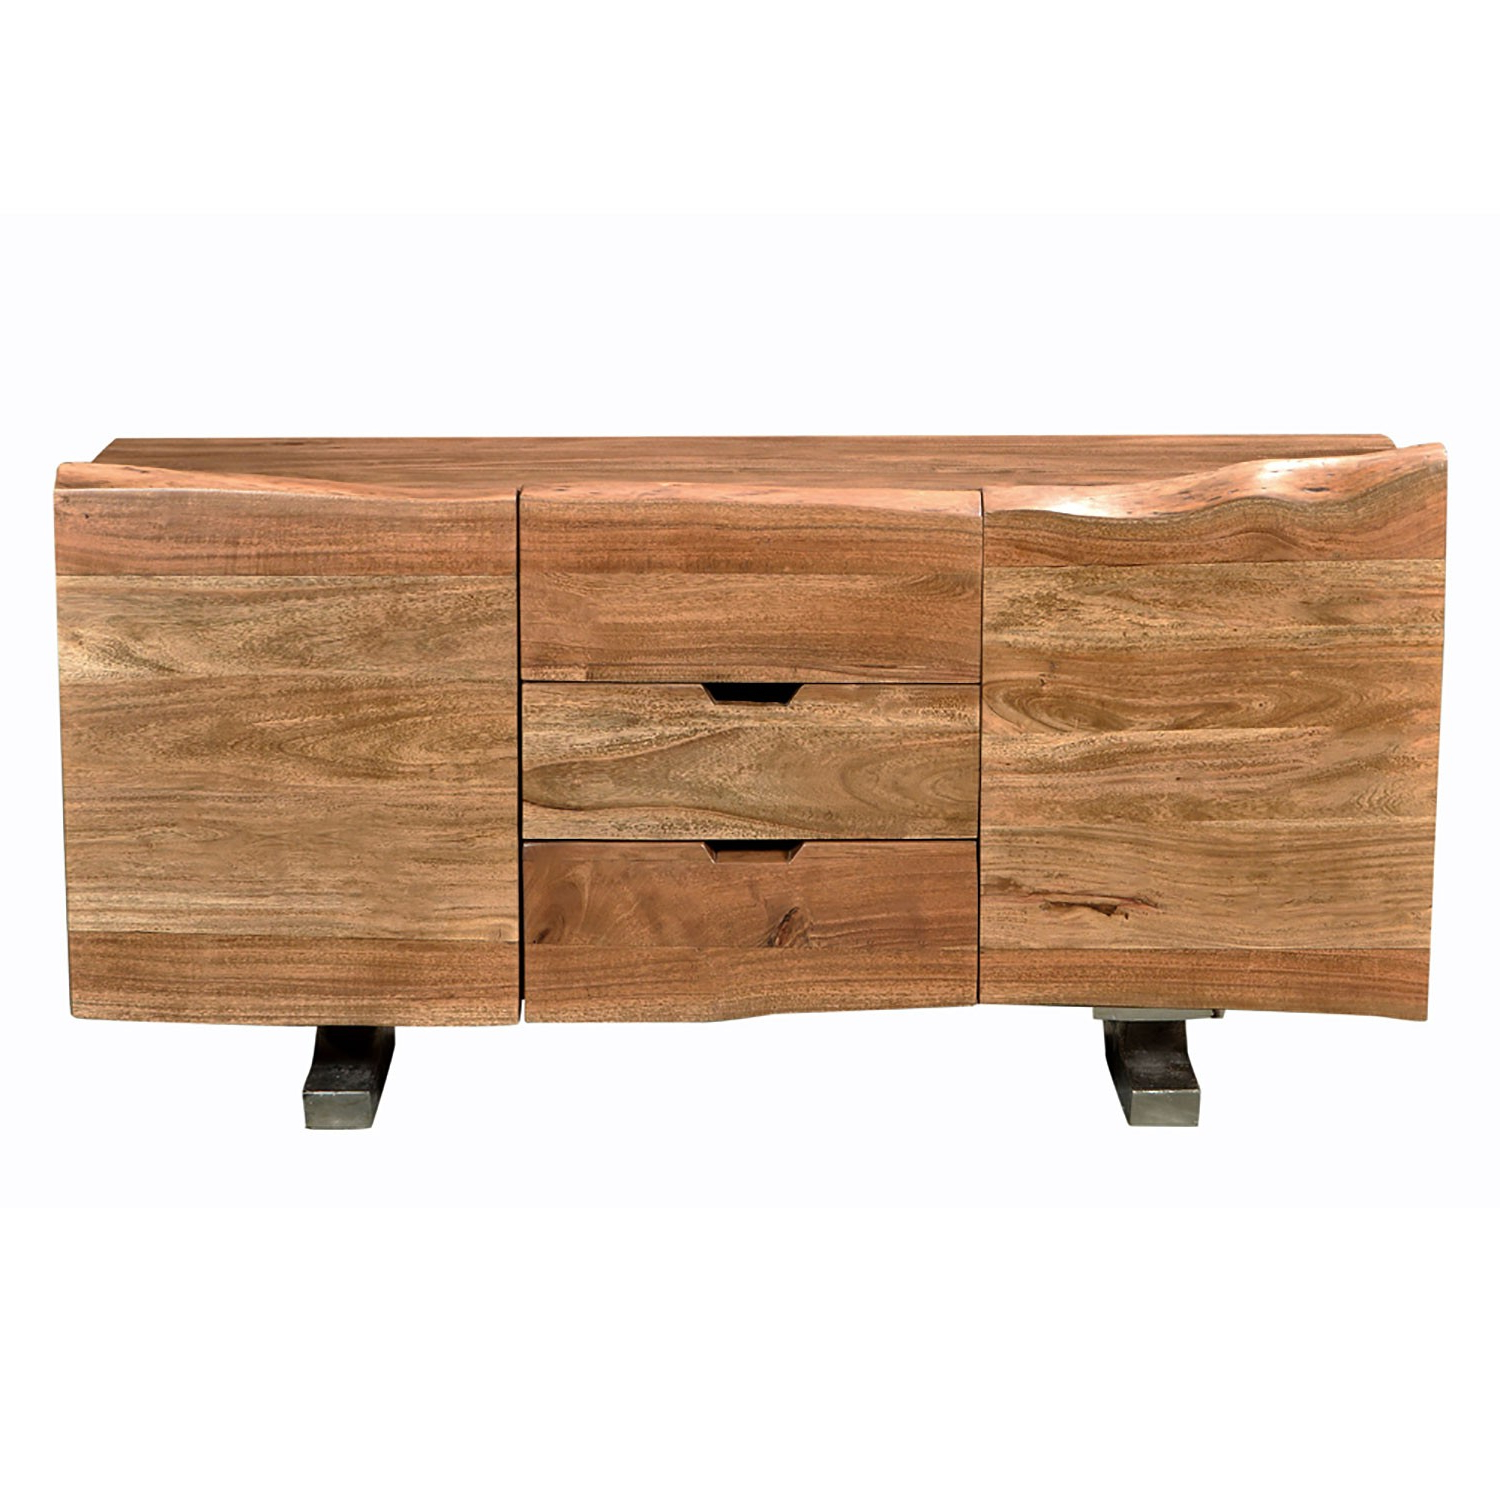 Recent Acacia Wood 4 Door Sideboards Intended For Earth Collection Buffet 60*18*28, Acacia Wood W/ Iron Legs On Raw (View 14 of 20)